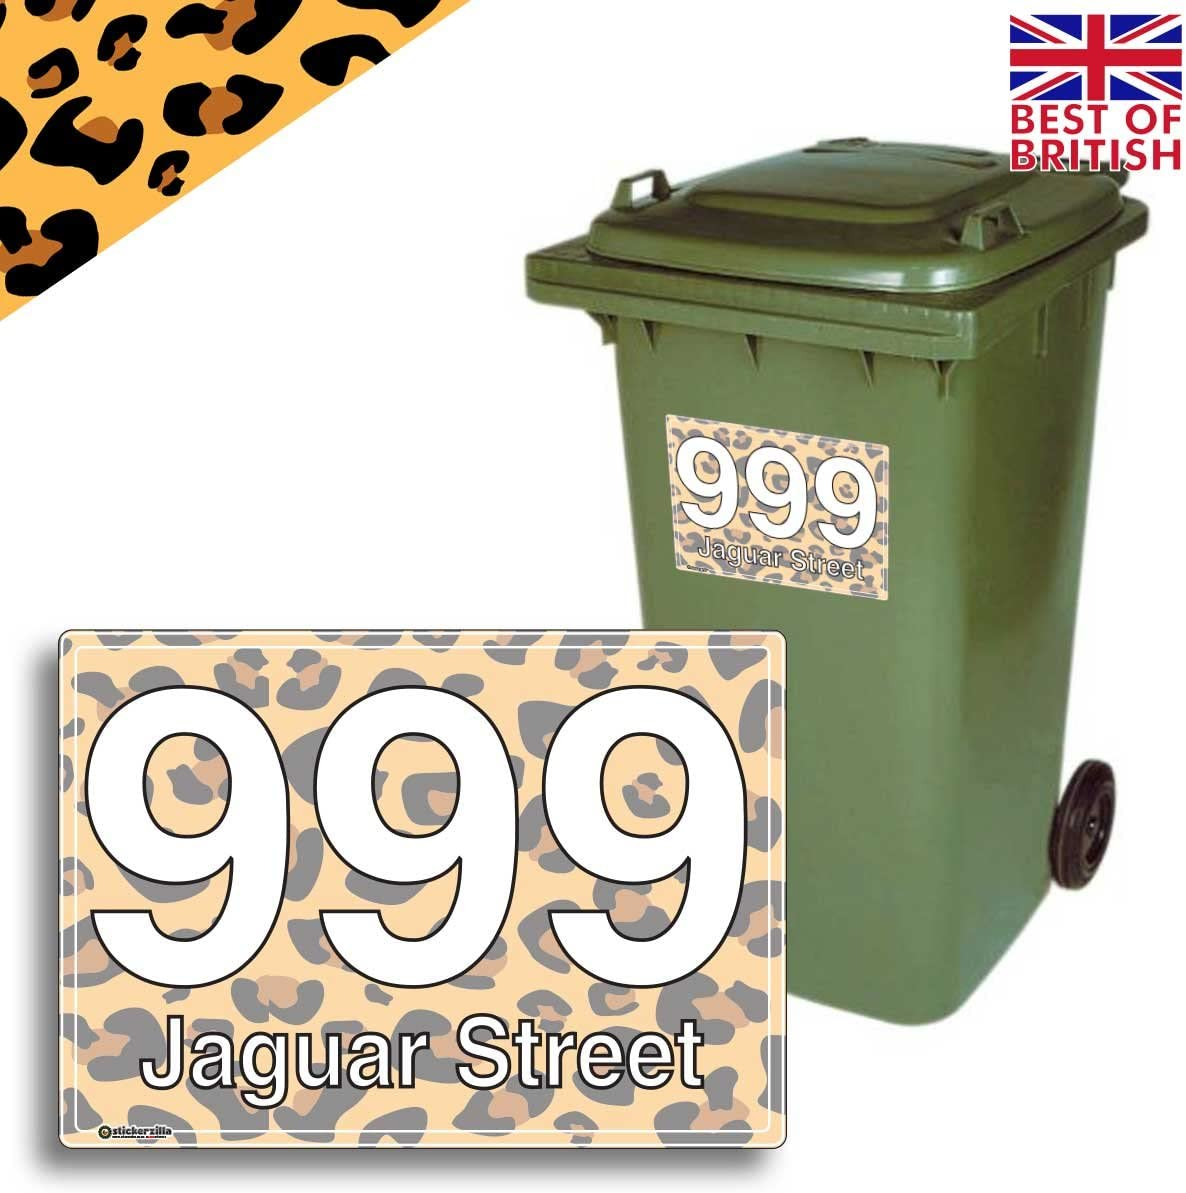 4 Pack Size A5 JAGUAR Personalised Wheelie Bin Sticker//Vinyl Labels with House Number /& Street Name